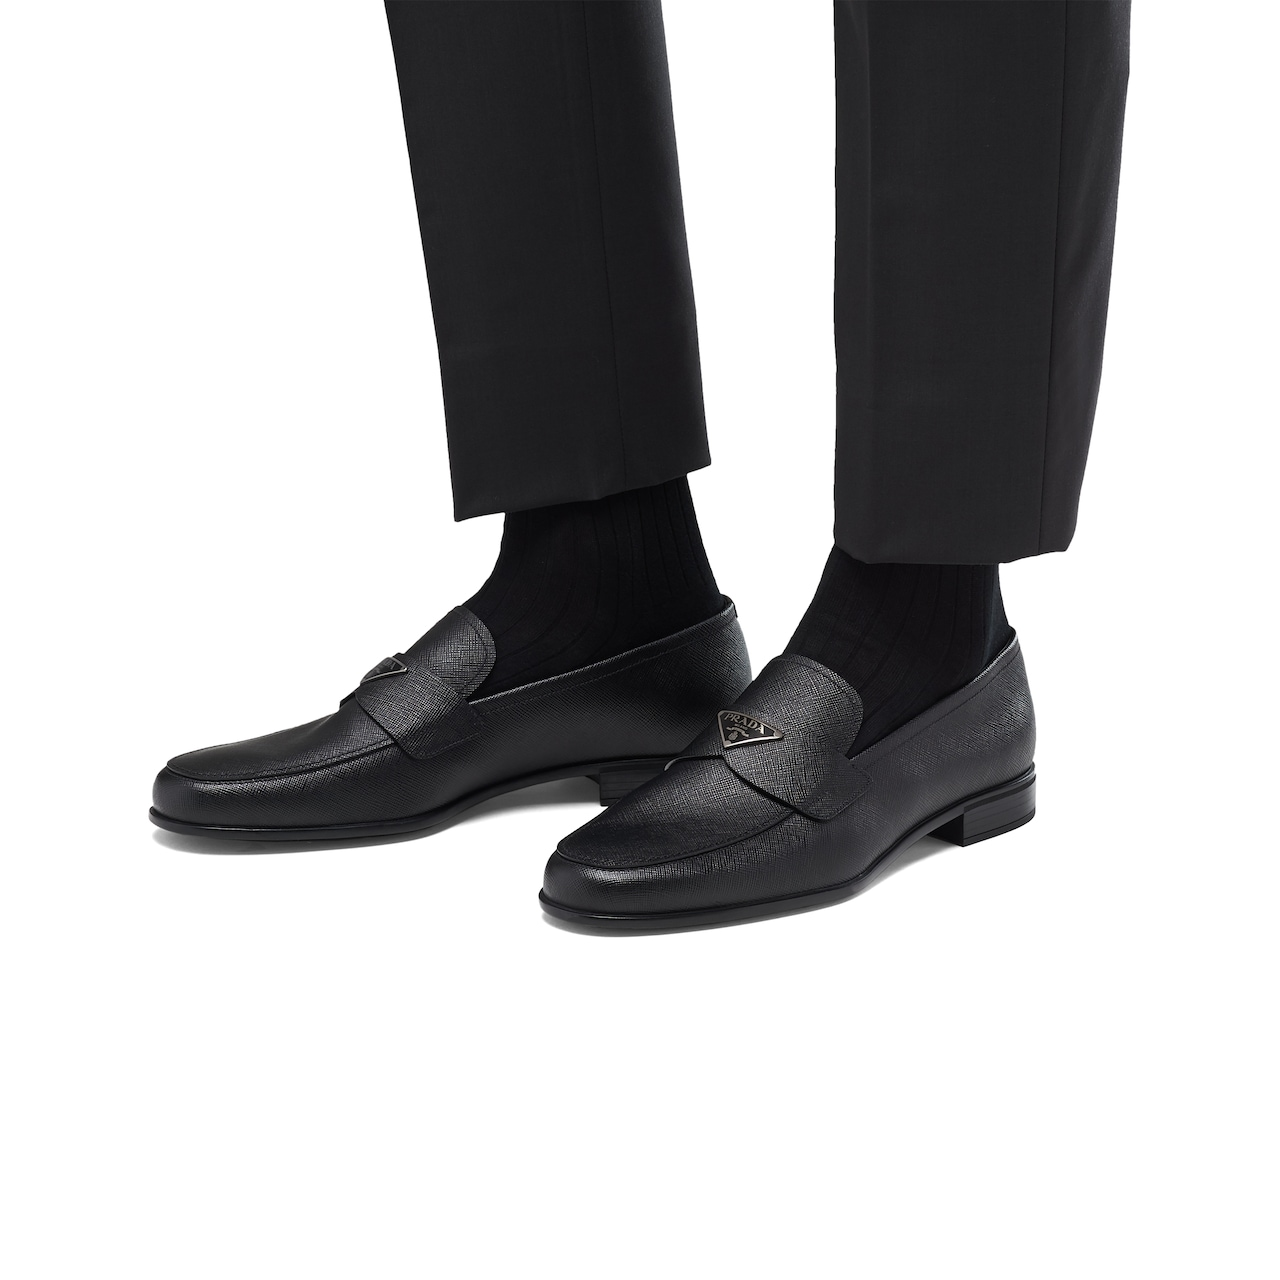 Prada Saffiano leather loafers 3